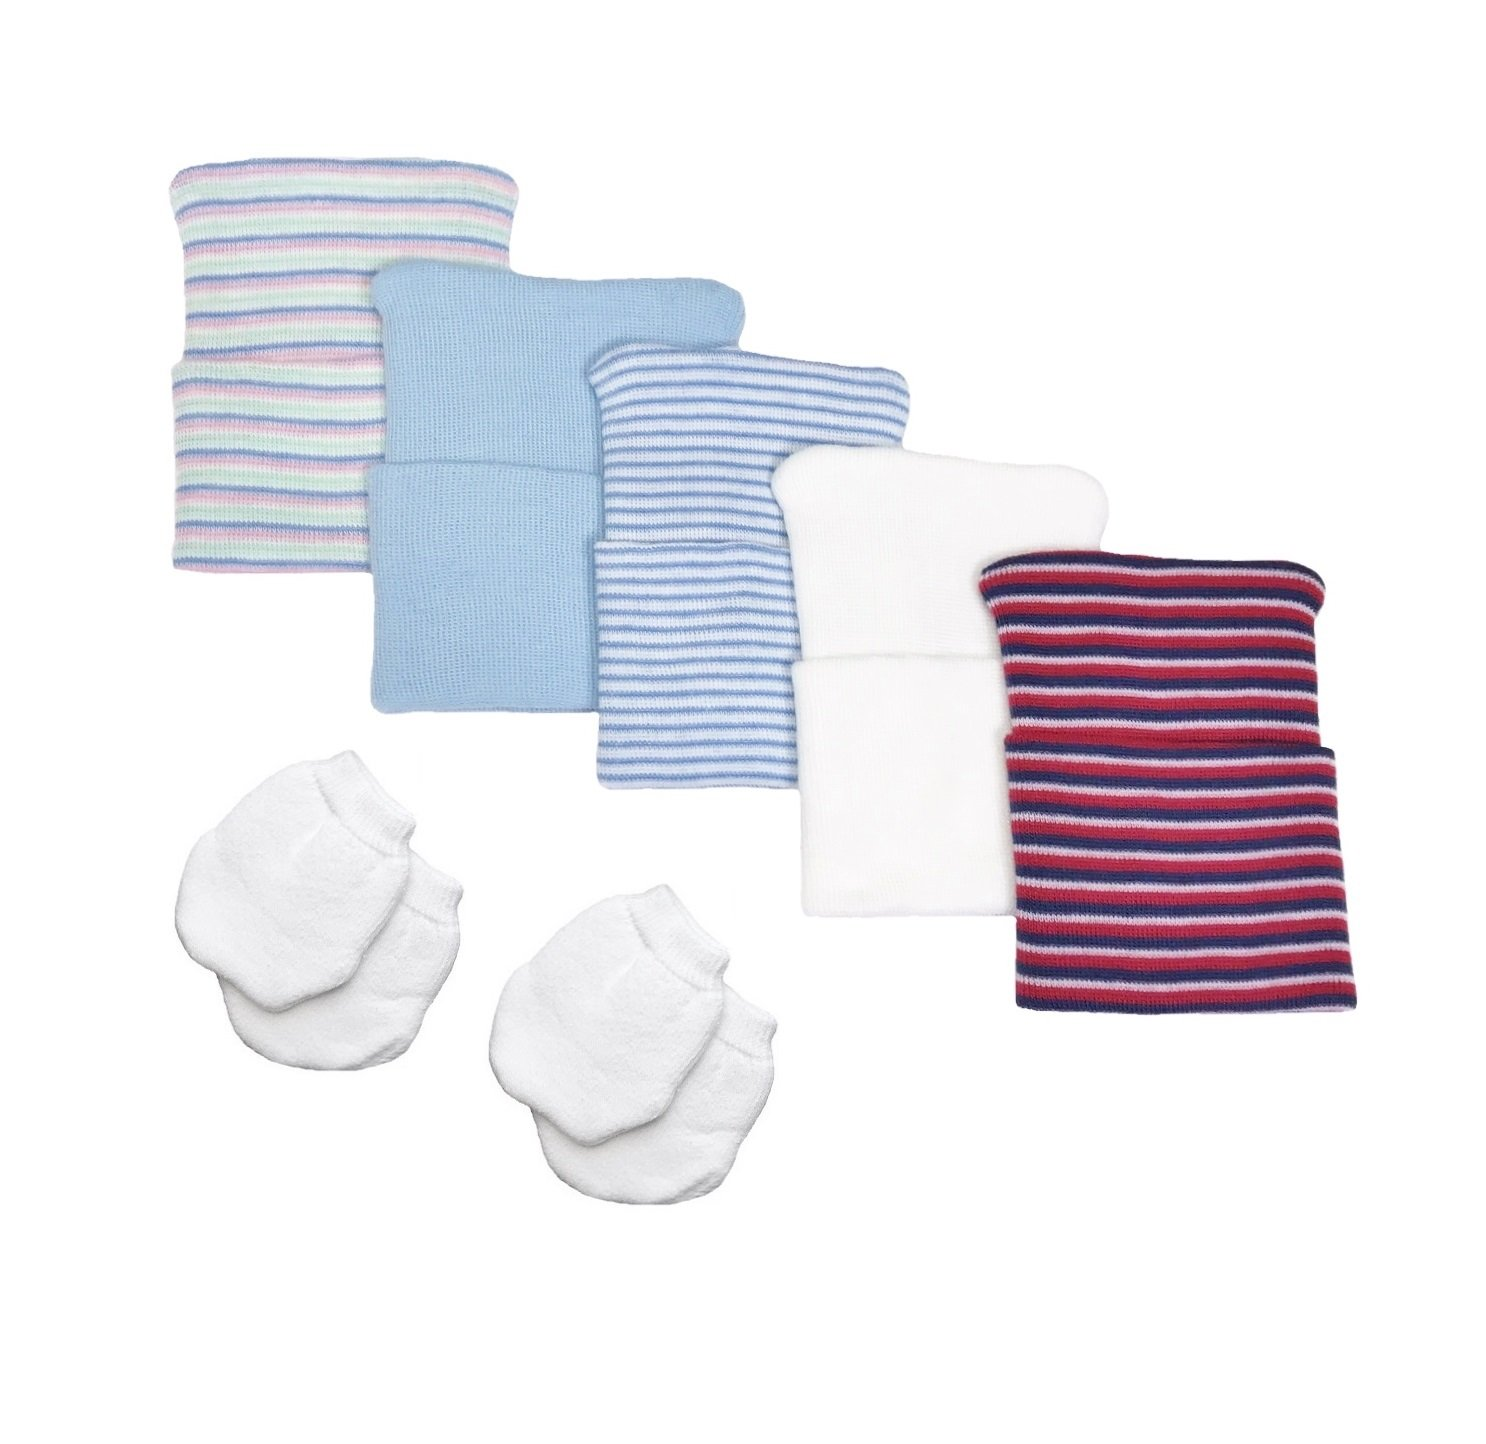 5 Piece Hospital Hat & Mitten Set for Newborn Baby (Boy) by Nurses Choice AZ-BCP2LB